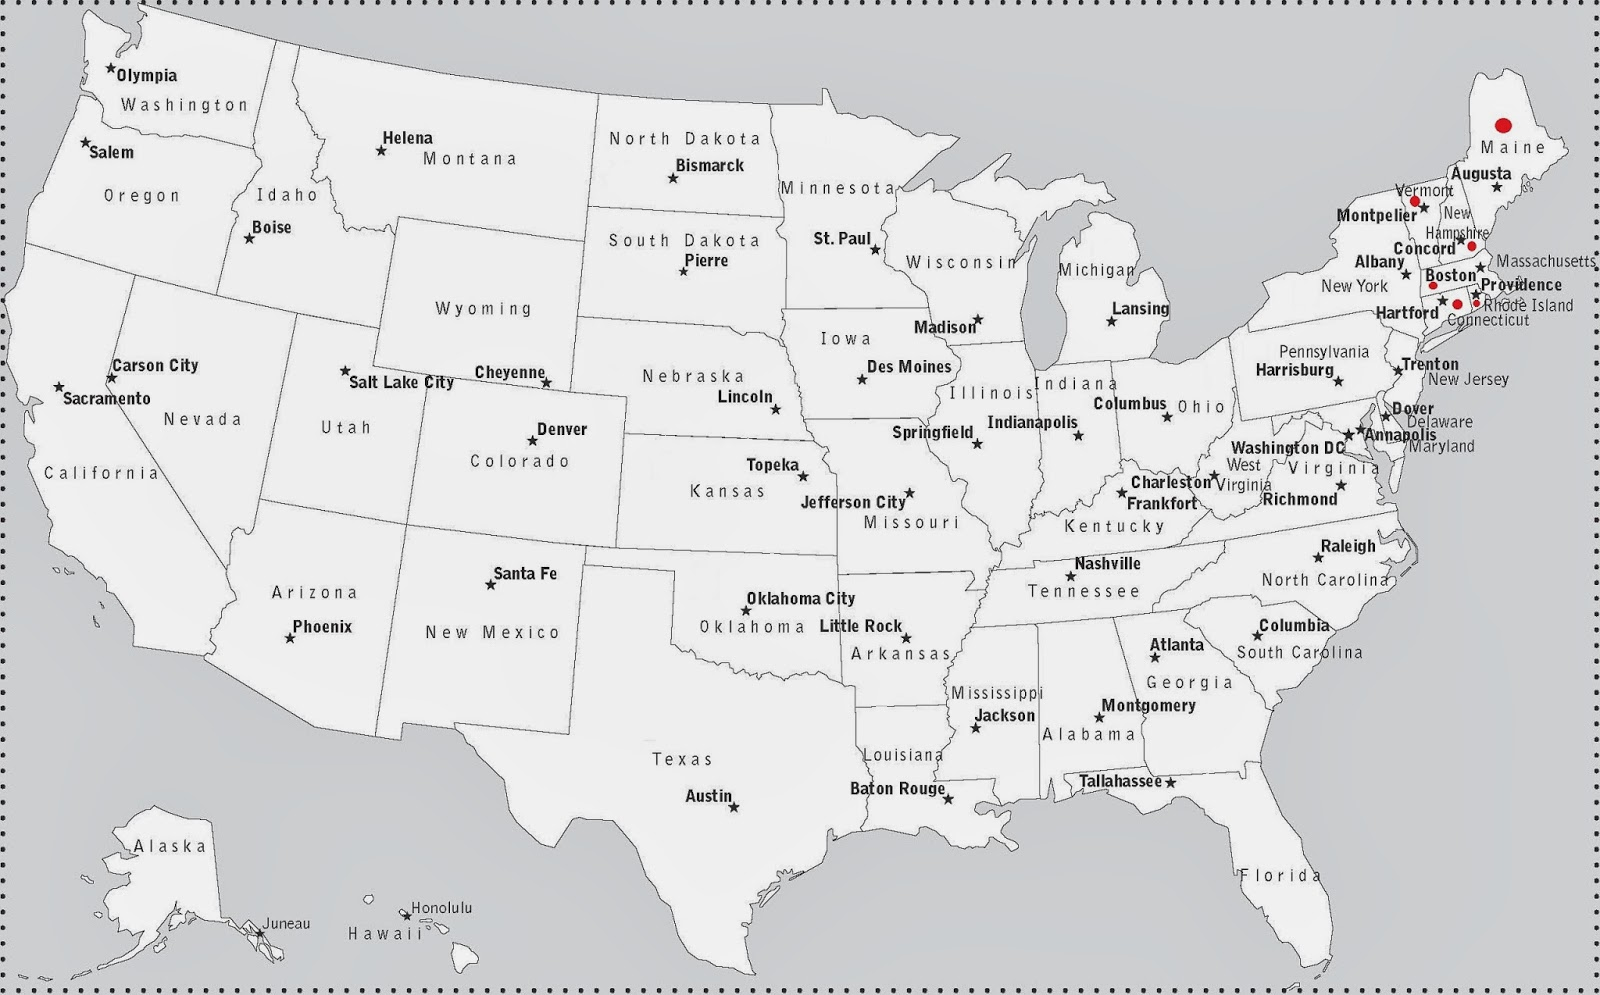 Northeastern States And Capitals Northeastern states